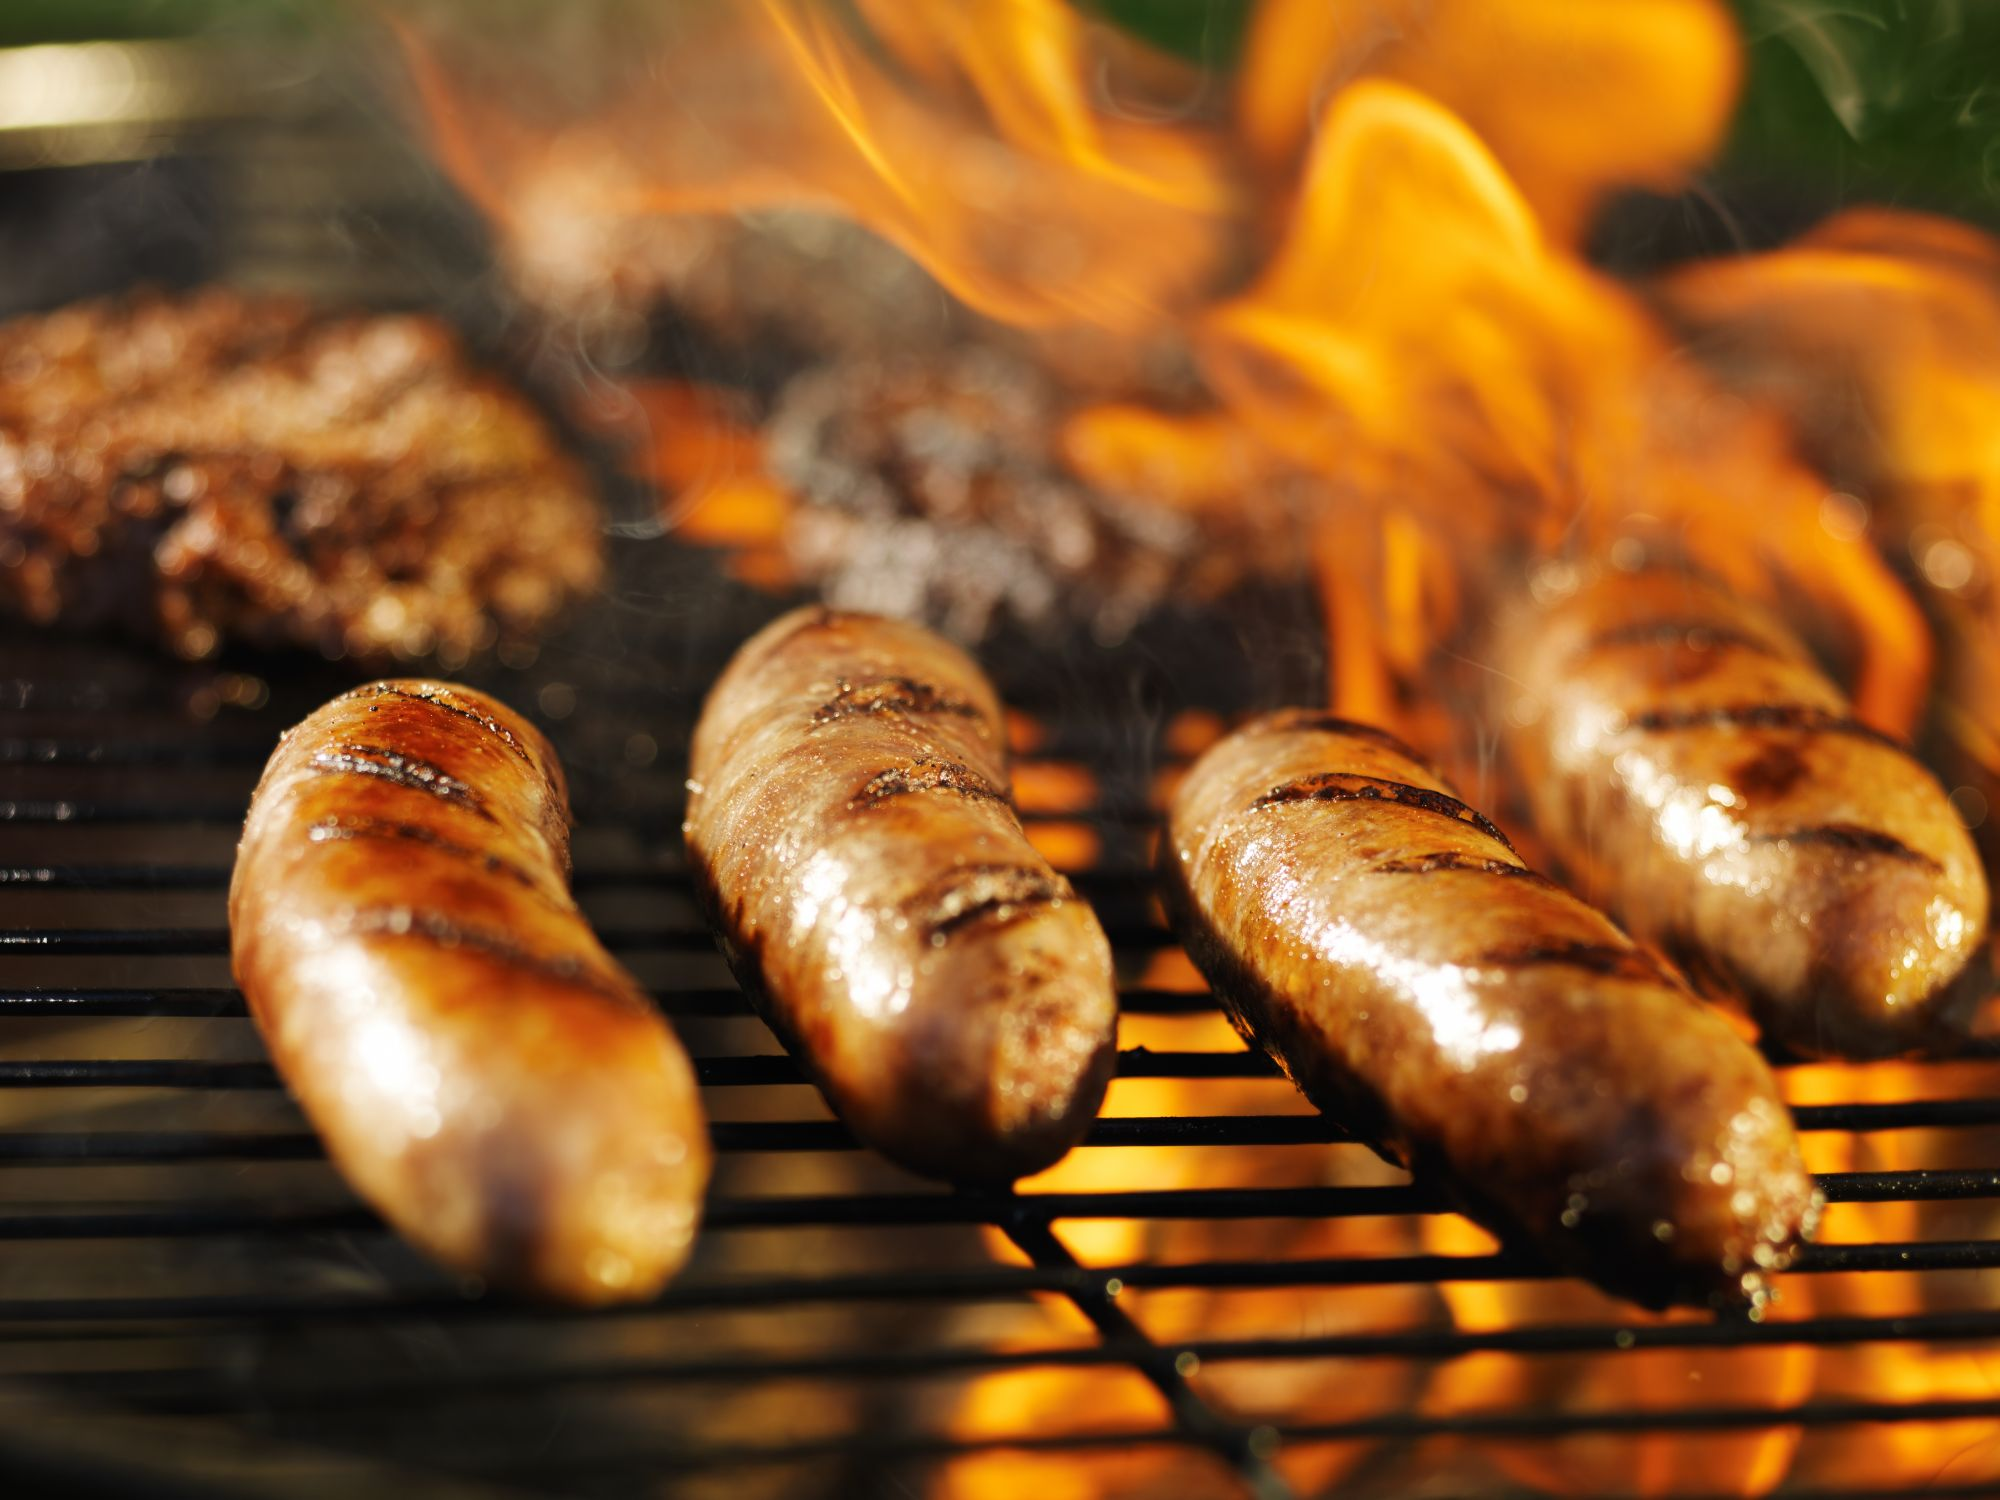 bratwursts-cooking-over-fire-on-barbecue-grill-515628317_7216x5412